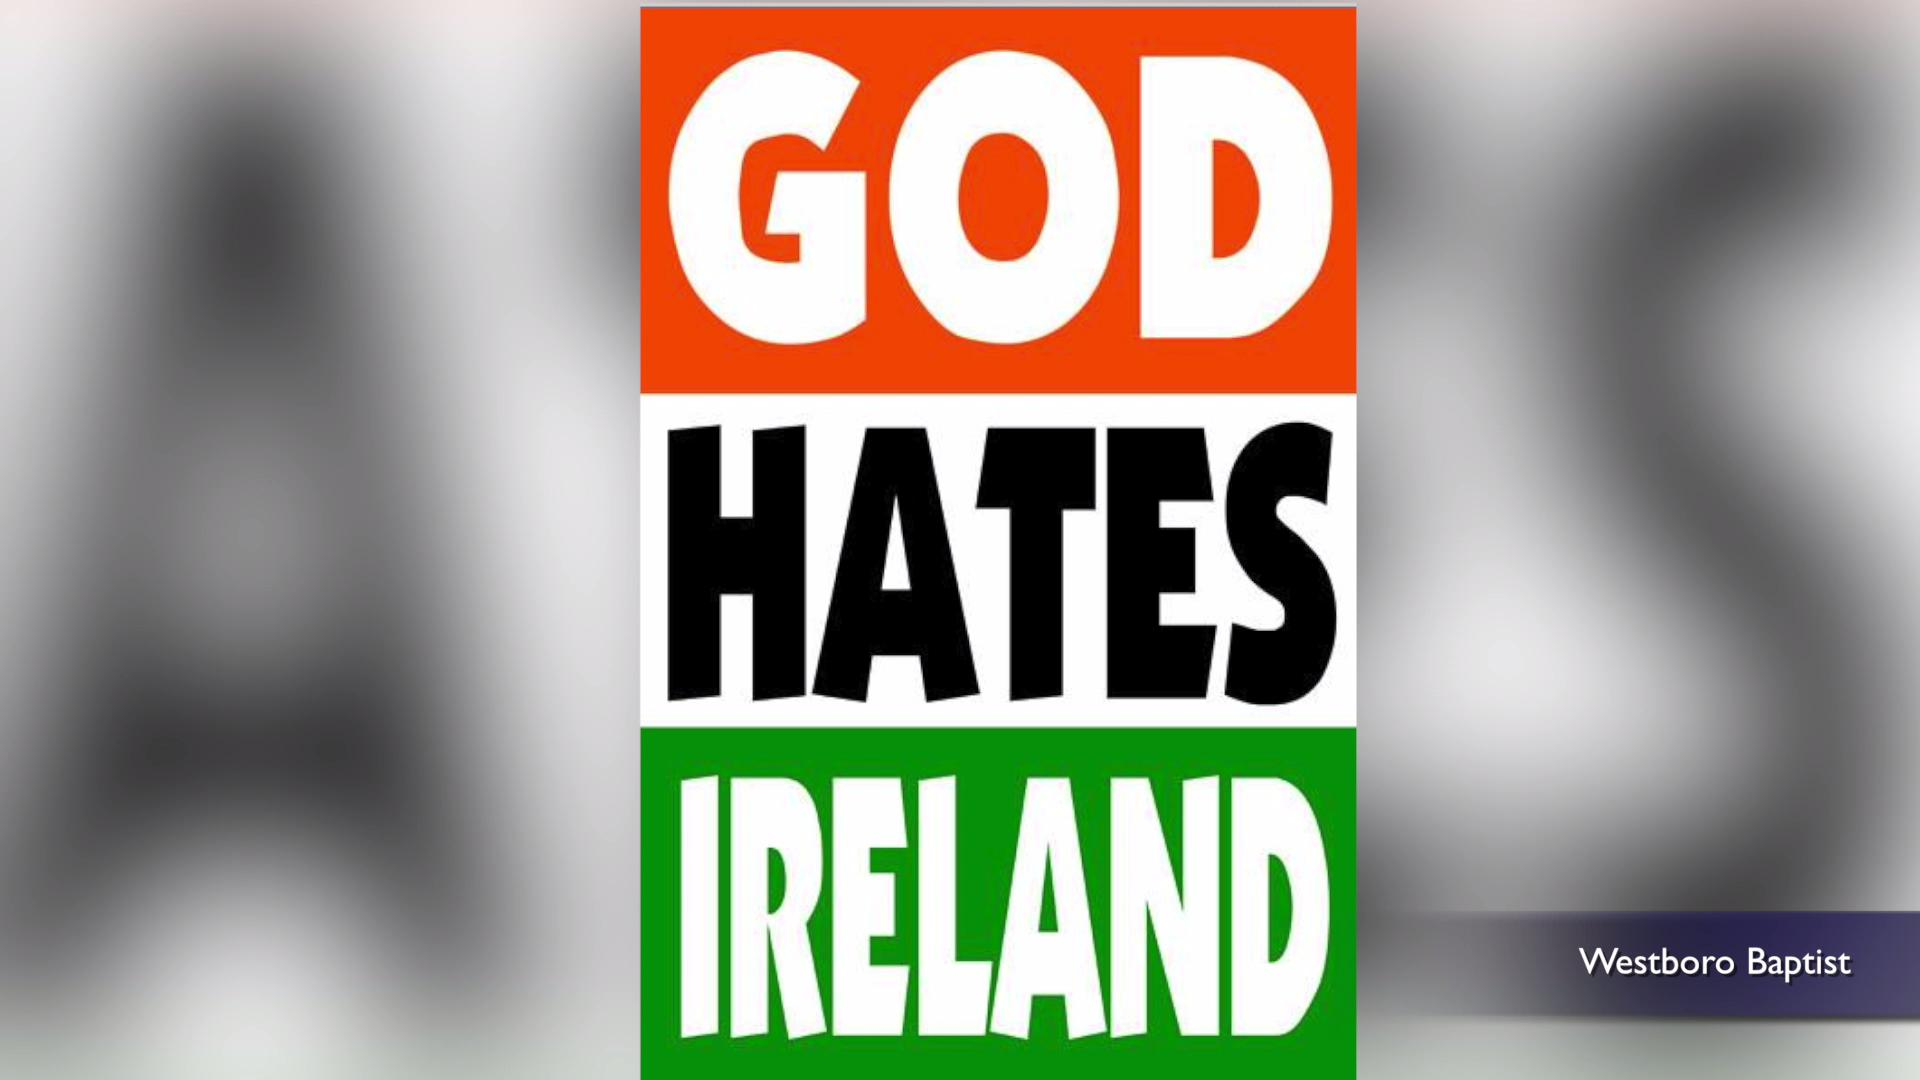 Hate-spewing 'church' uses wrong flag to protest Ireland